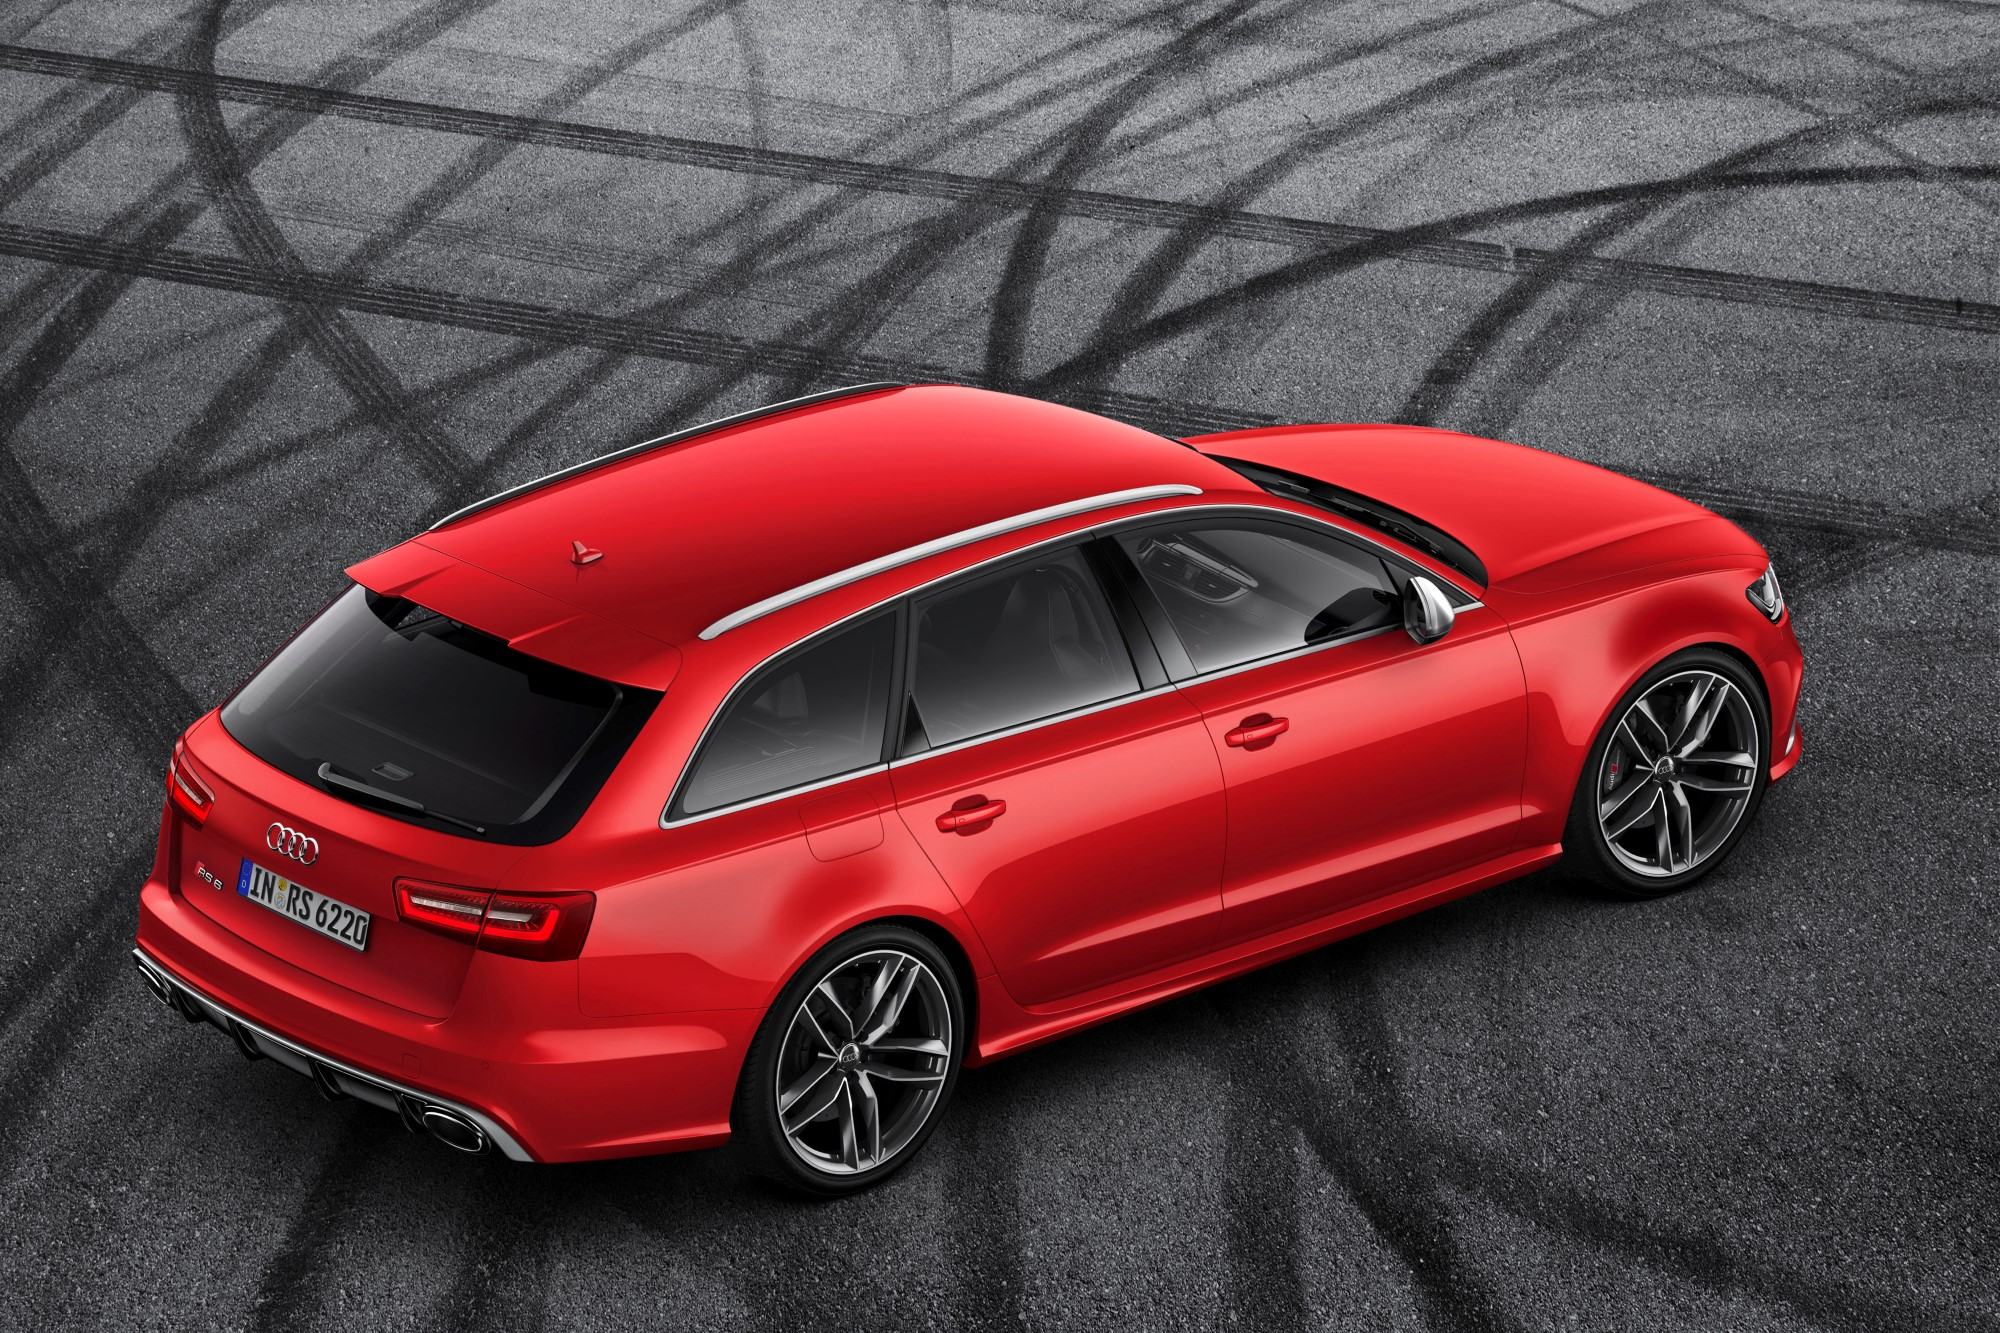 New And Used Audi RS Prices Photos Reviews Specs The Car - Audi rs6 price